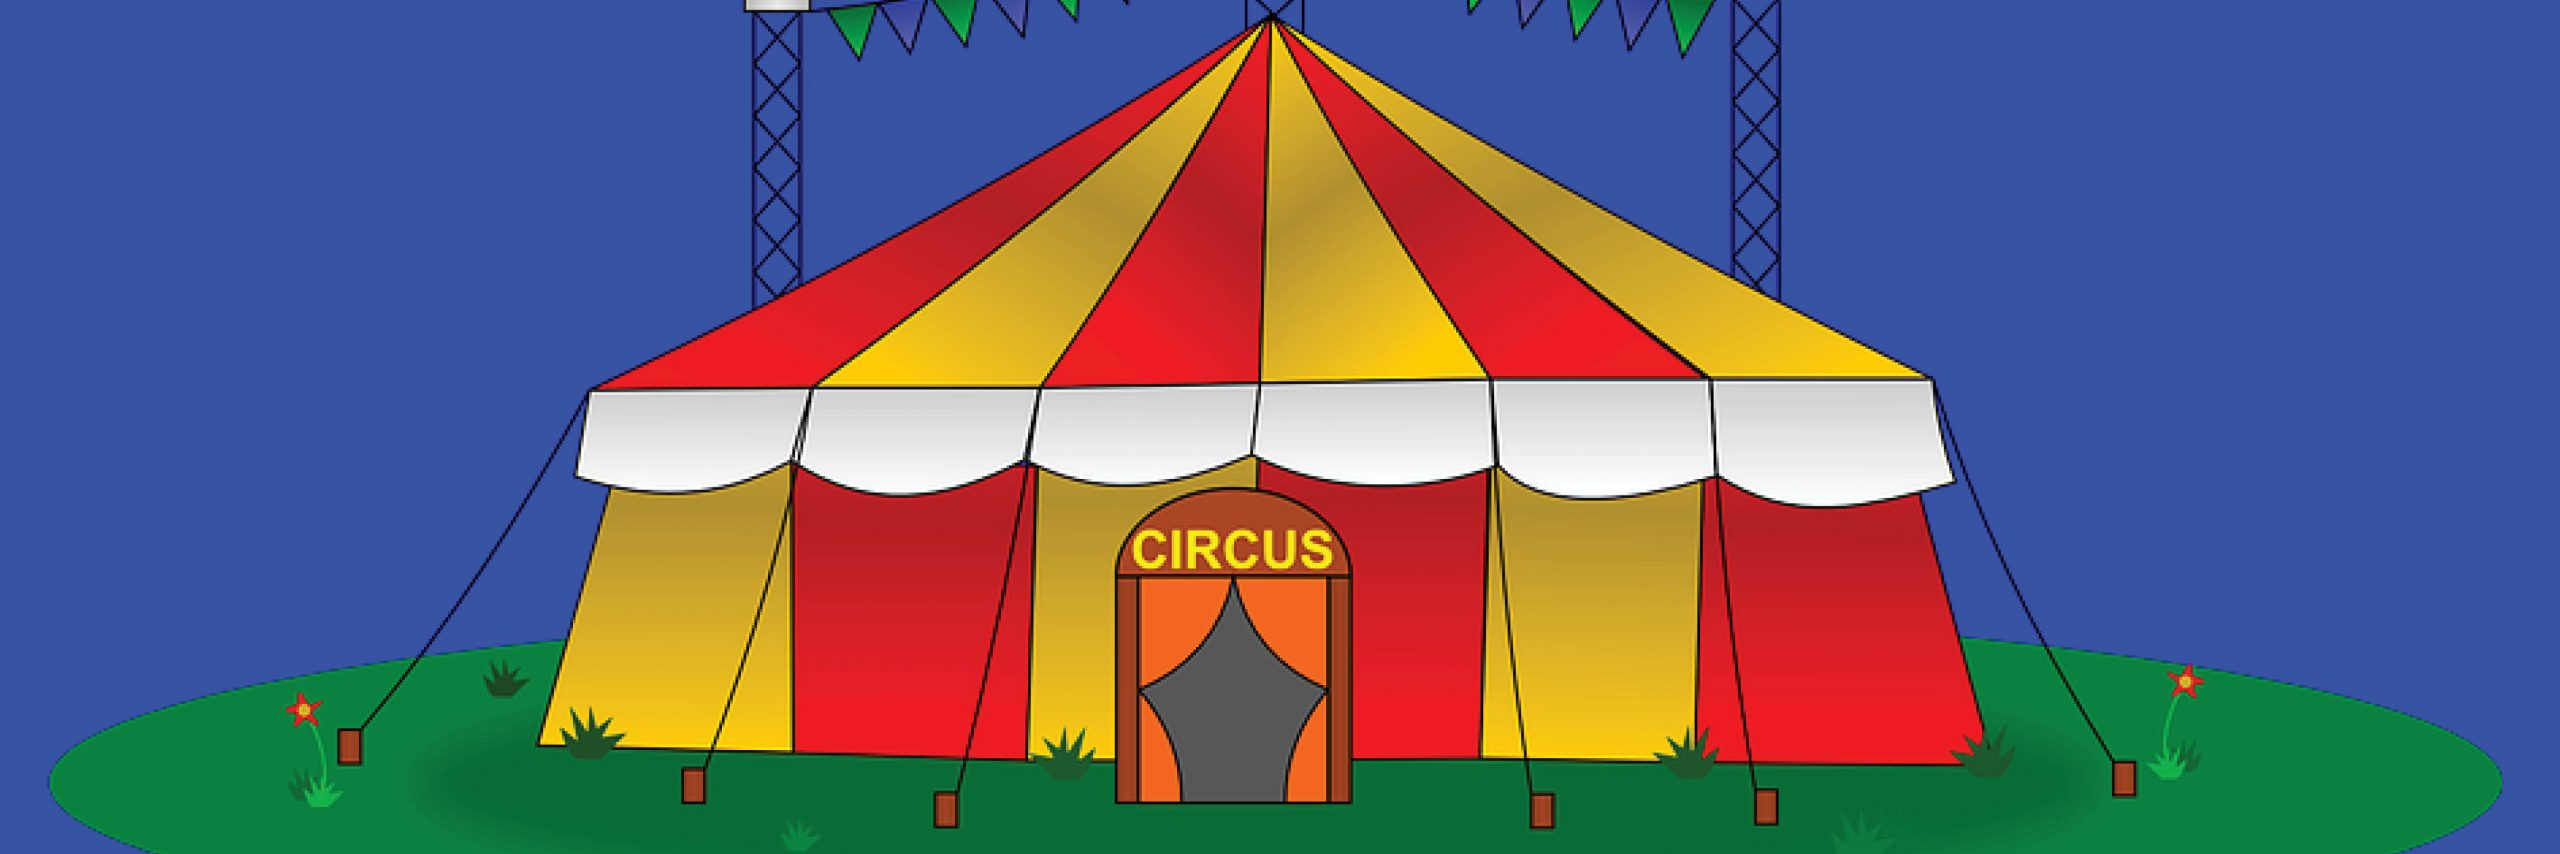 Pictures You Can Hear Circus